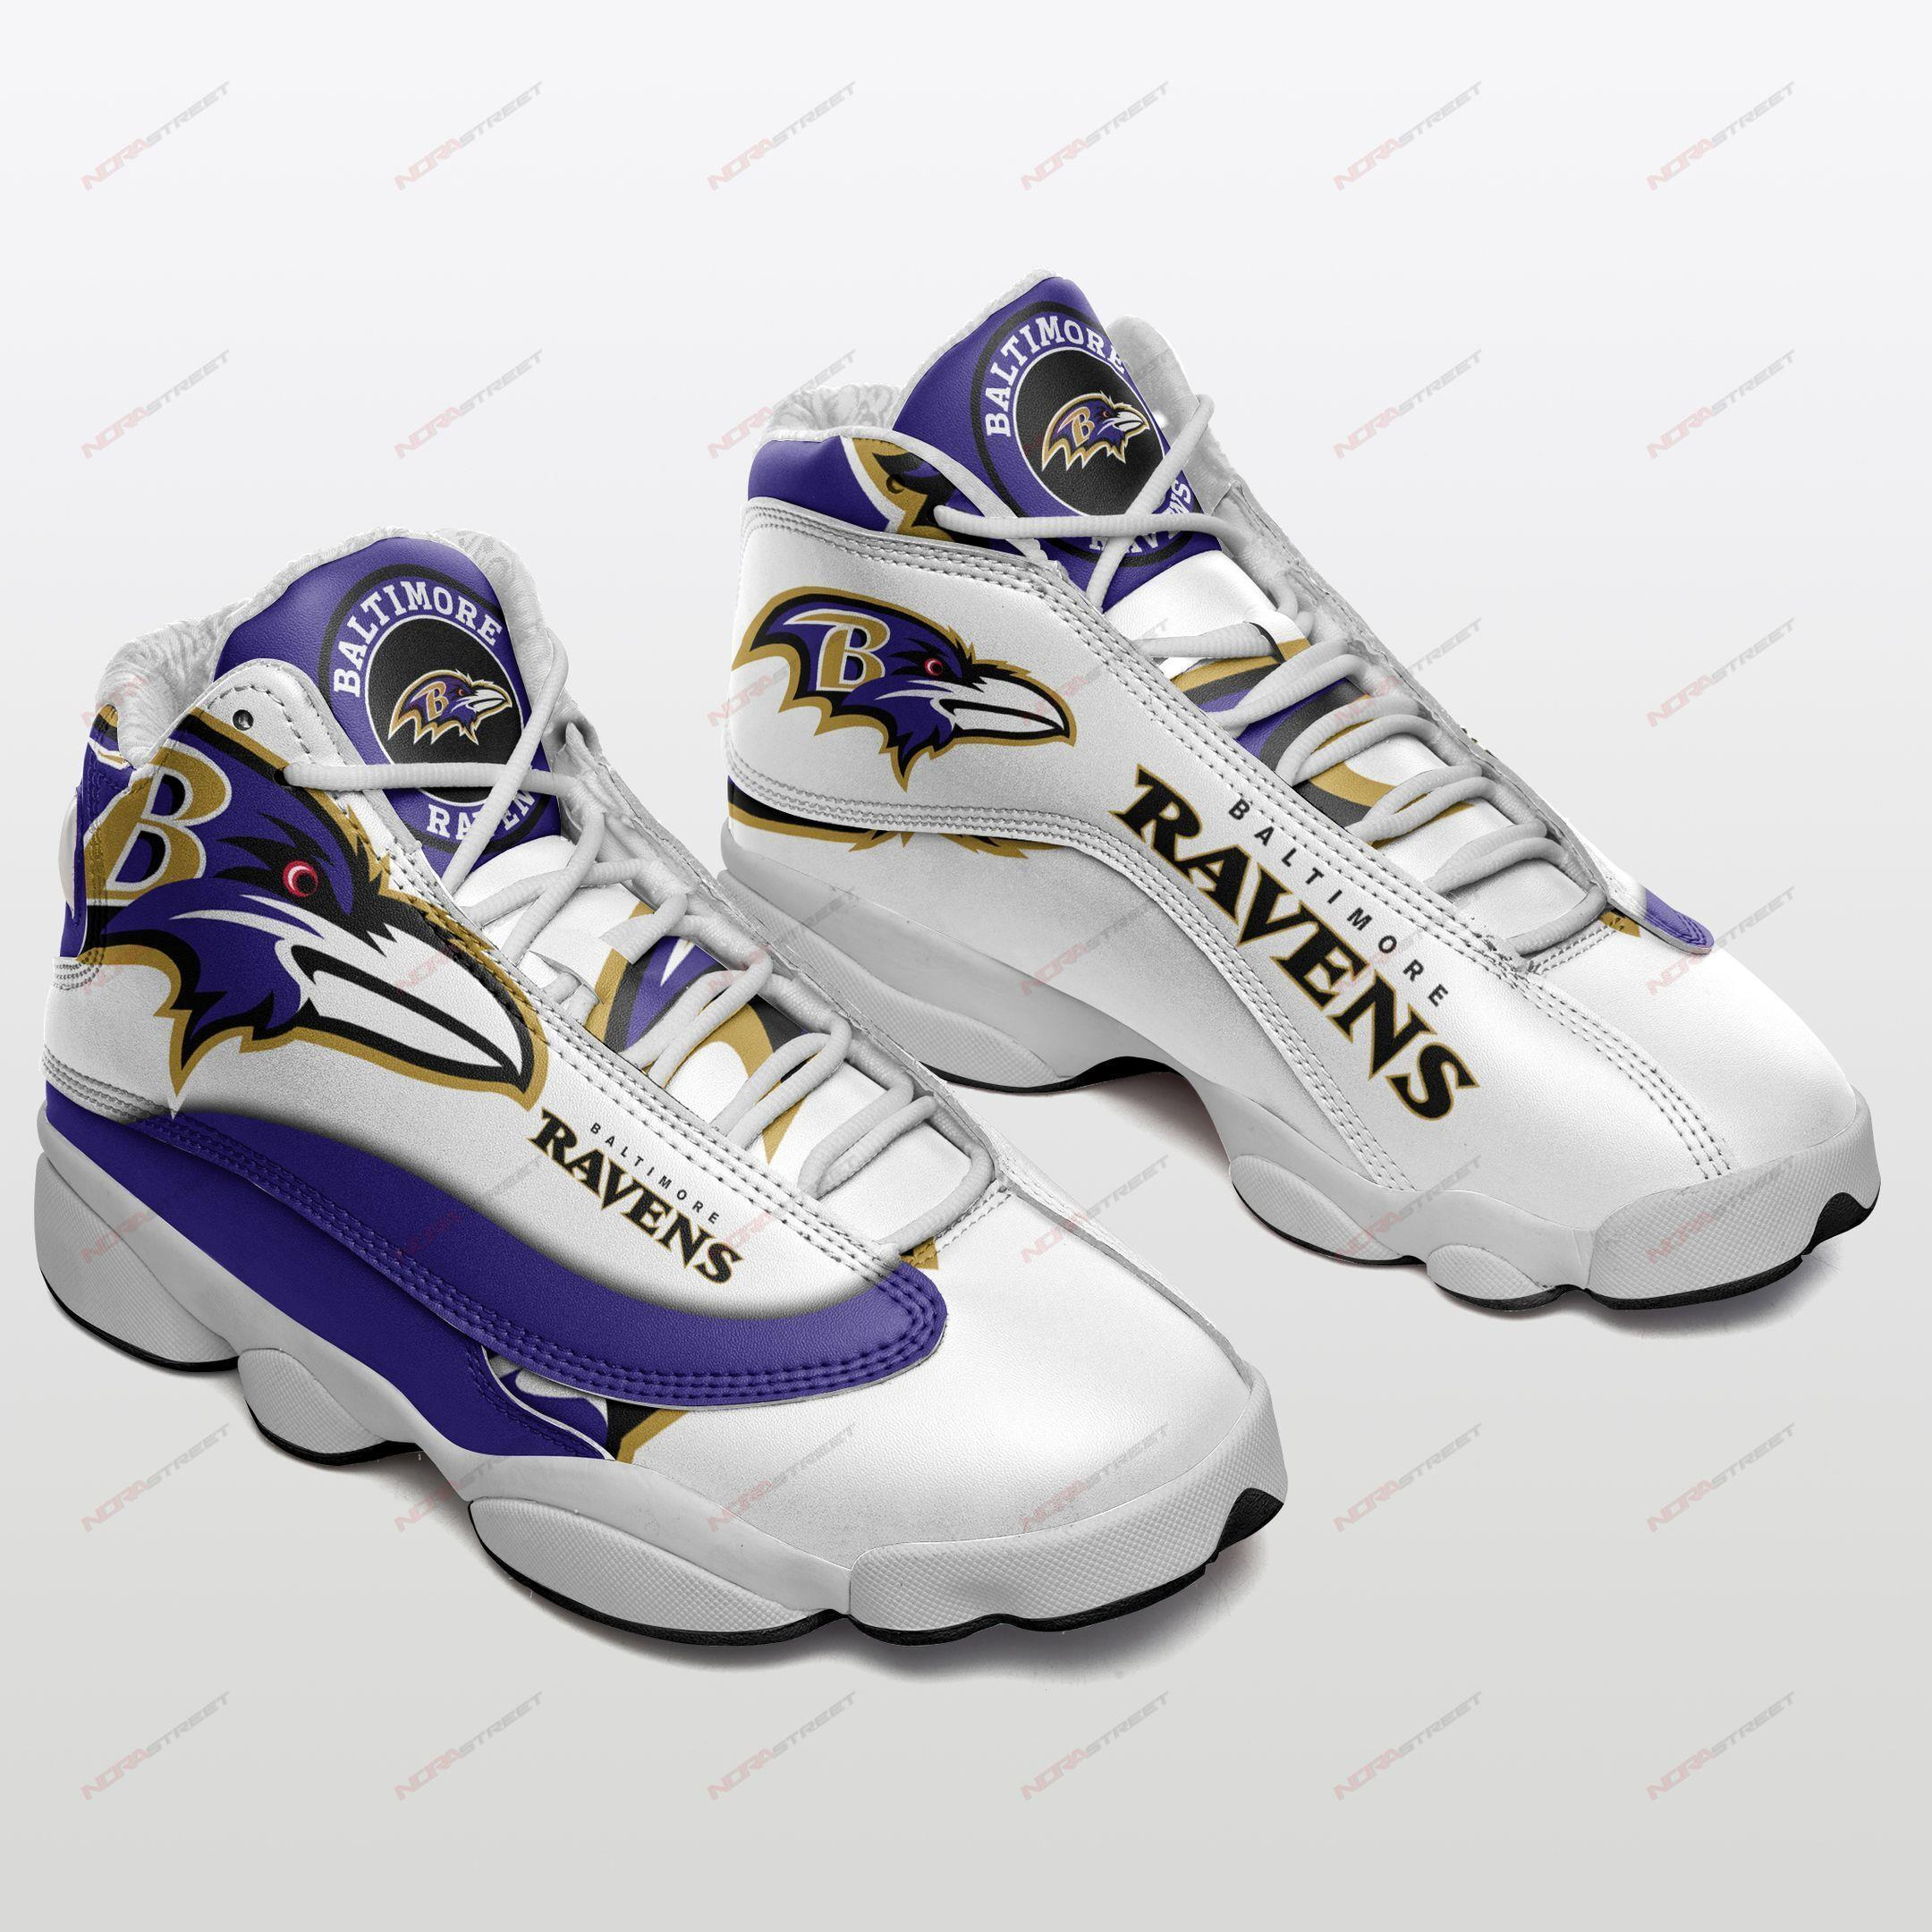 Baltimore Ravens Air Jordan 13 Sneakers Sport Shoes